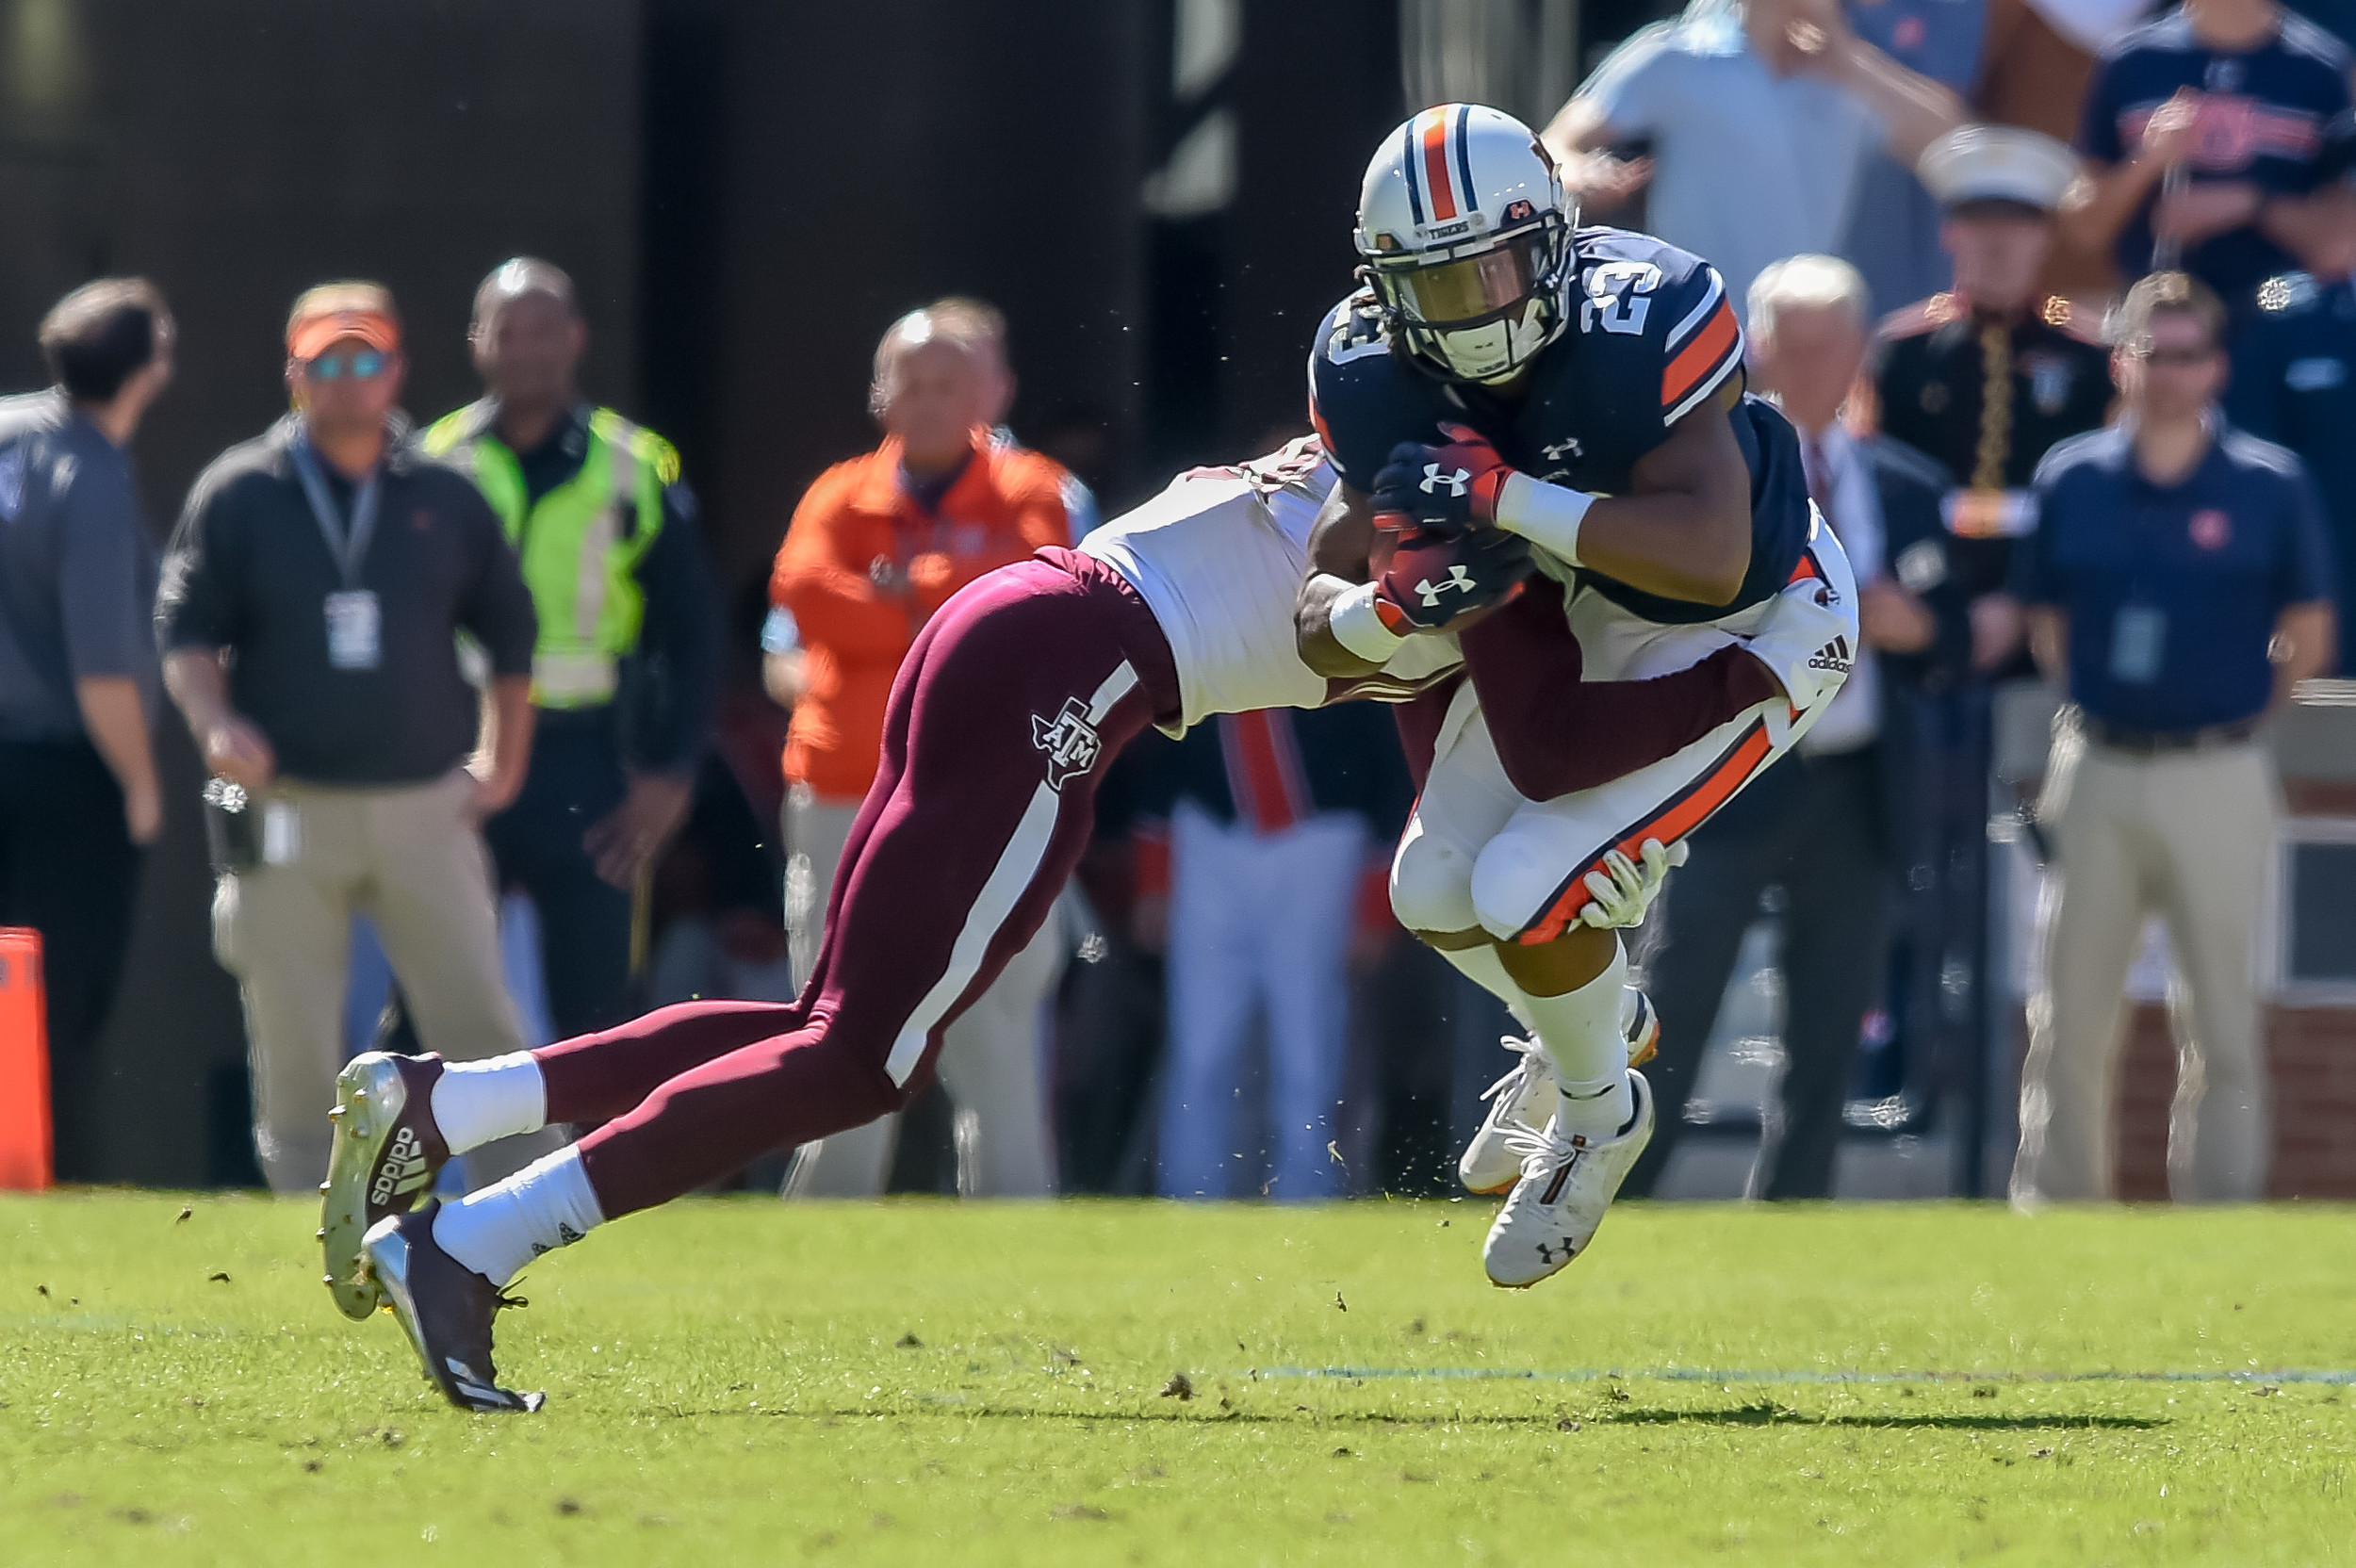 Auburn Tigers wide receiver Ryan Davis (23) is wrapped up by Texas A&M Aggies defensive back Myles Jones (10) during the first half of an NCAA football game Saturday, November 3, 2018, at Jordan-Hare Stadium in Auburn, Ala. (Photo by Jeff Johnsey)